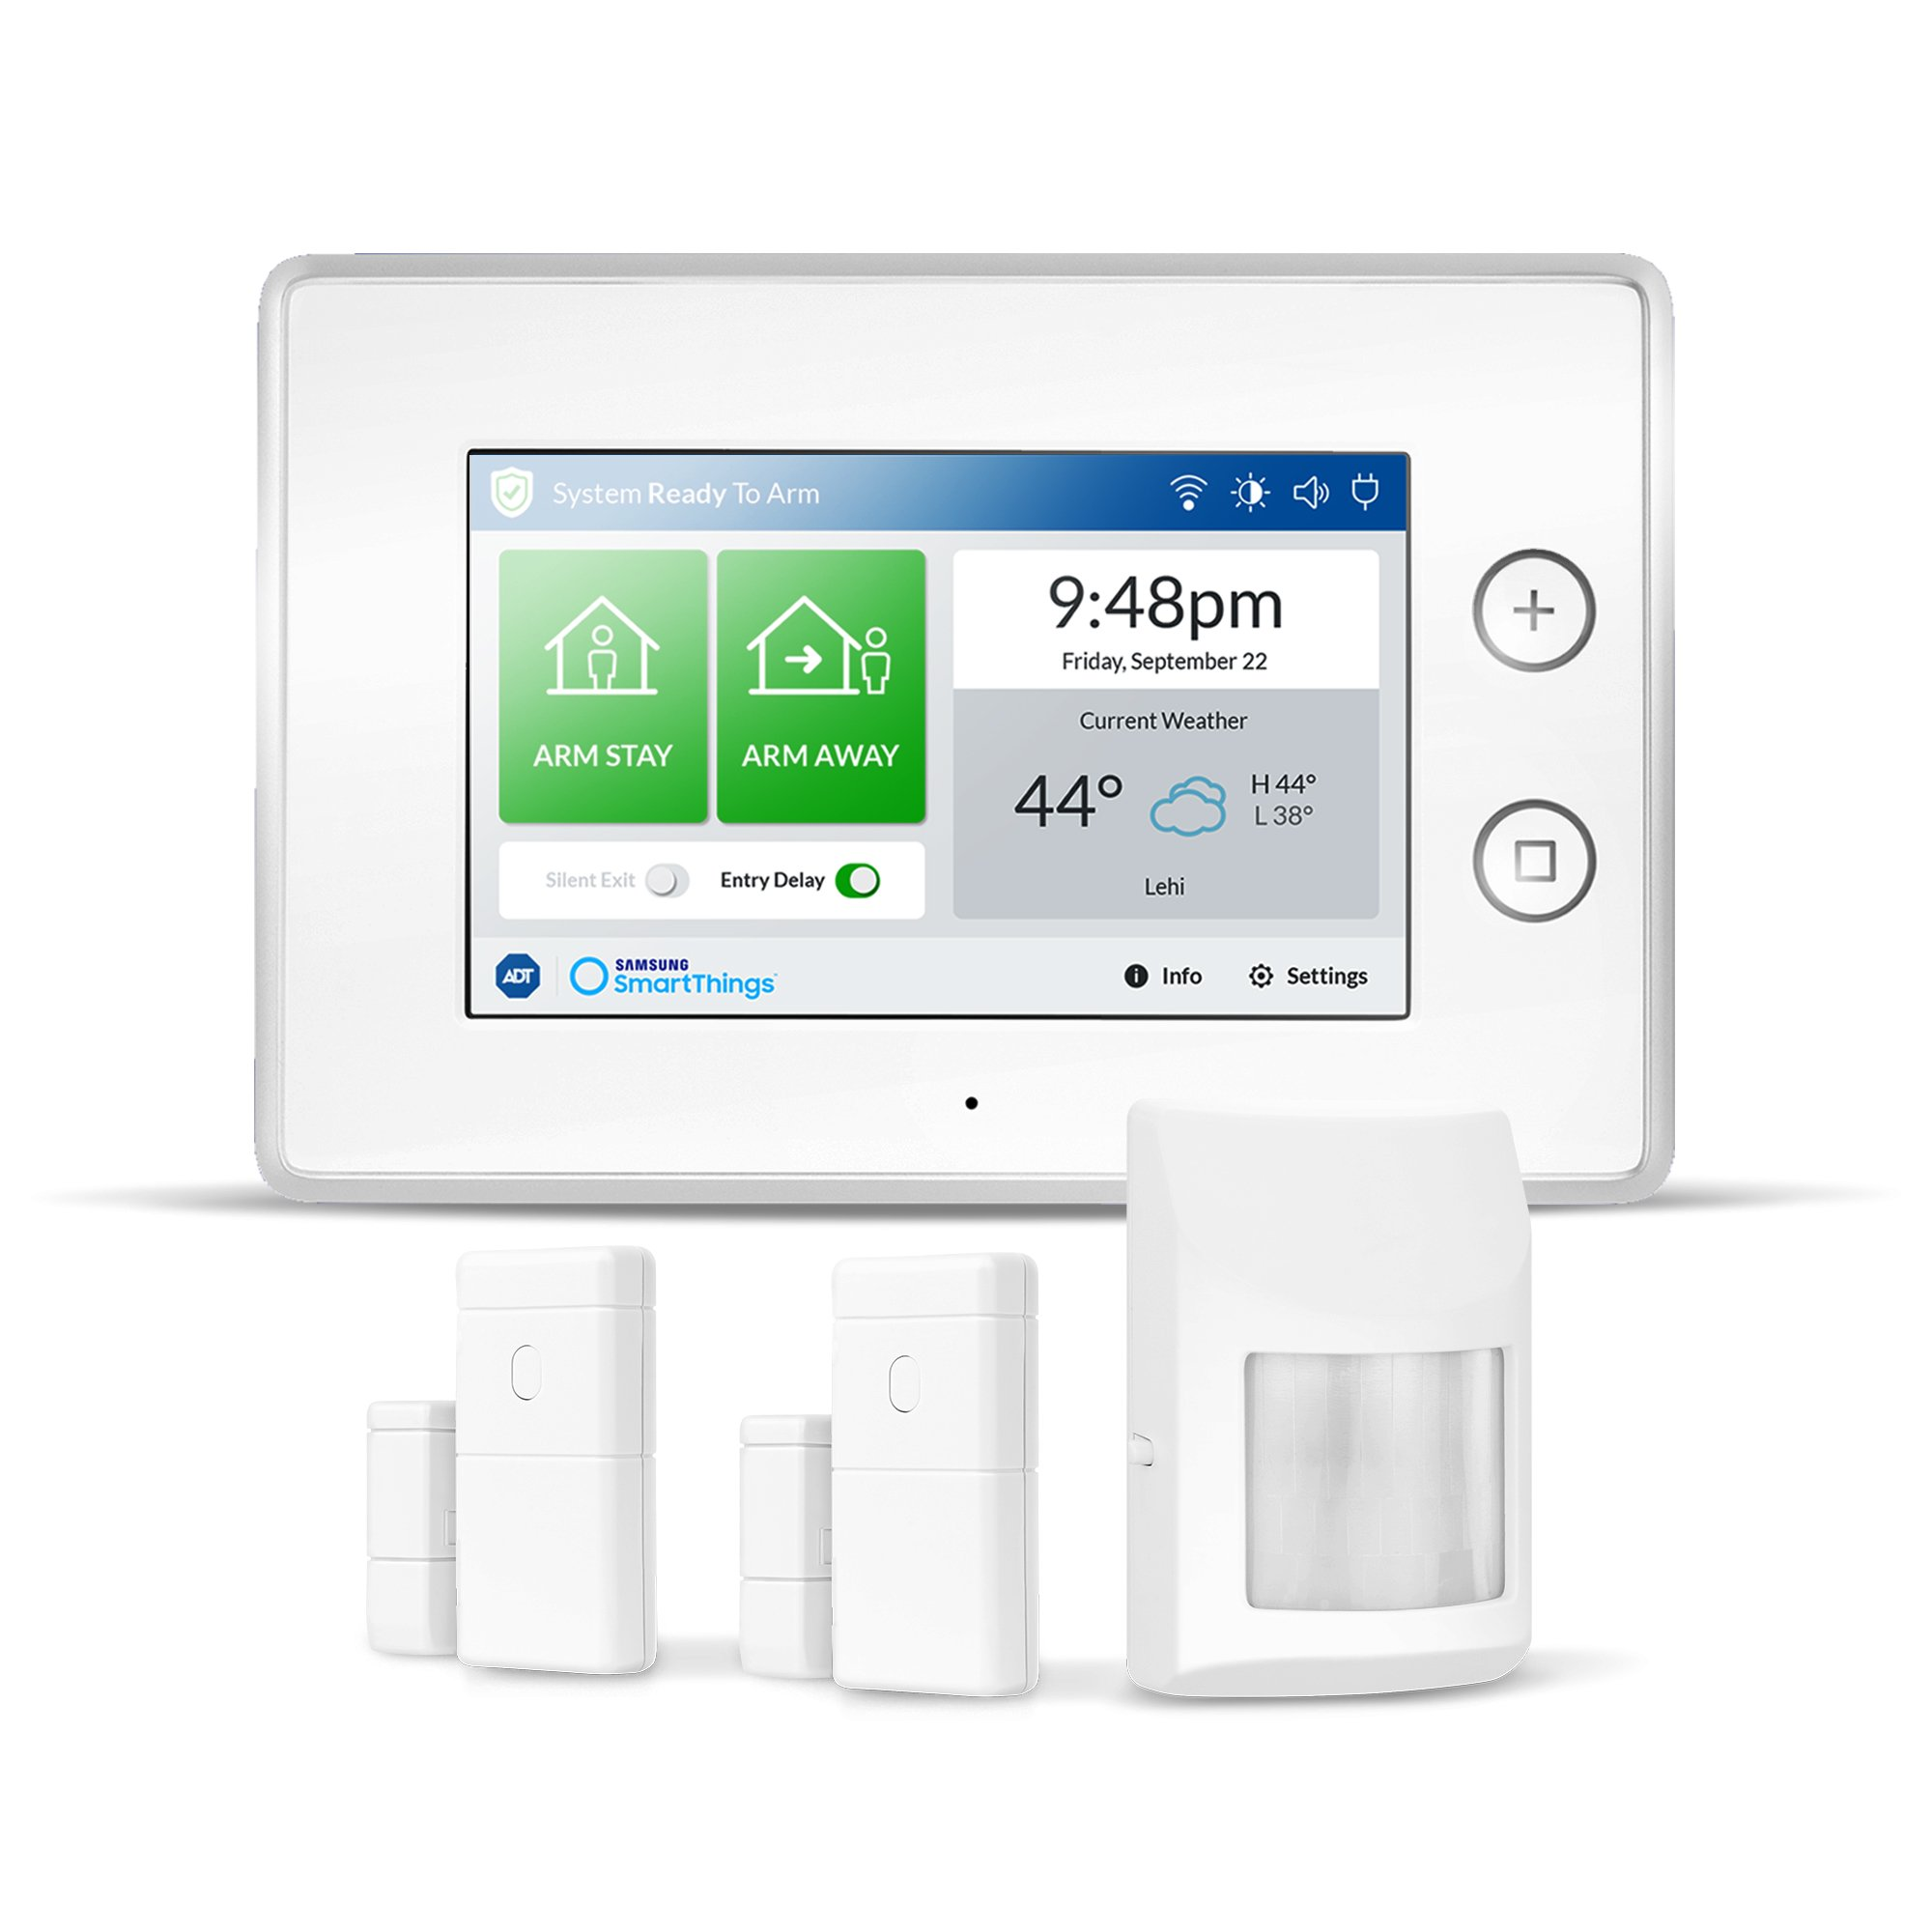 Samsung SmartThings ADT Wireless Home Security Starter Kit with DIY Smart Alarm System Hub, Door and Window Sensors, and Motion Detector - Alexa Compatible (Zigbee, Z-Wave, IP Network Protocols) by Samsung Electronics